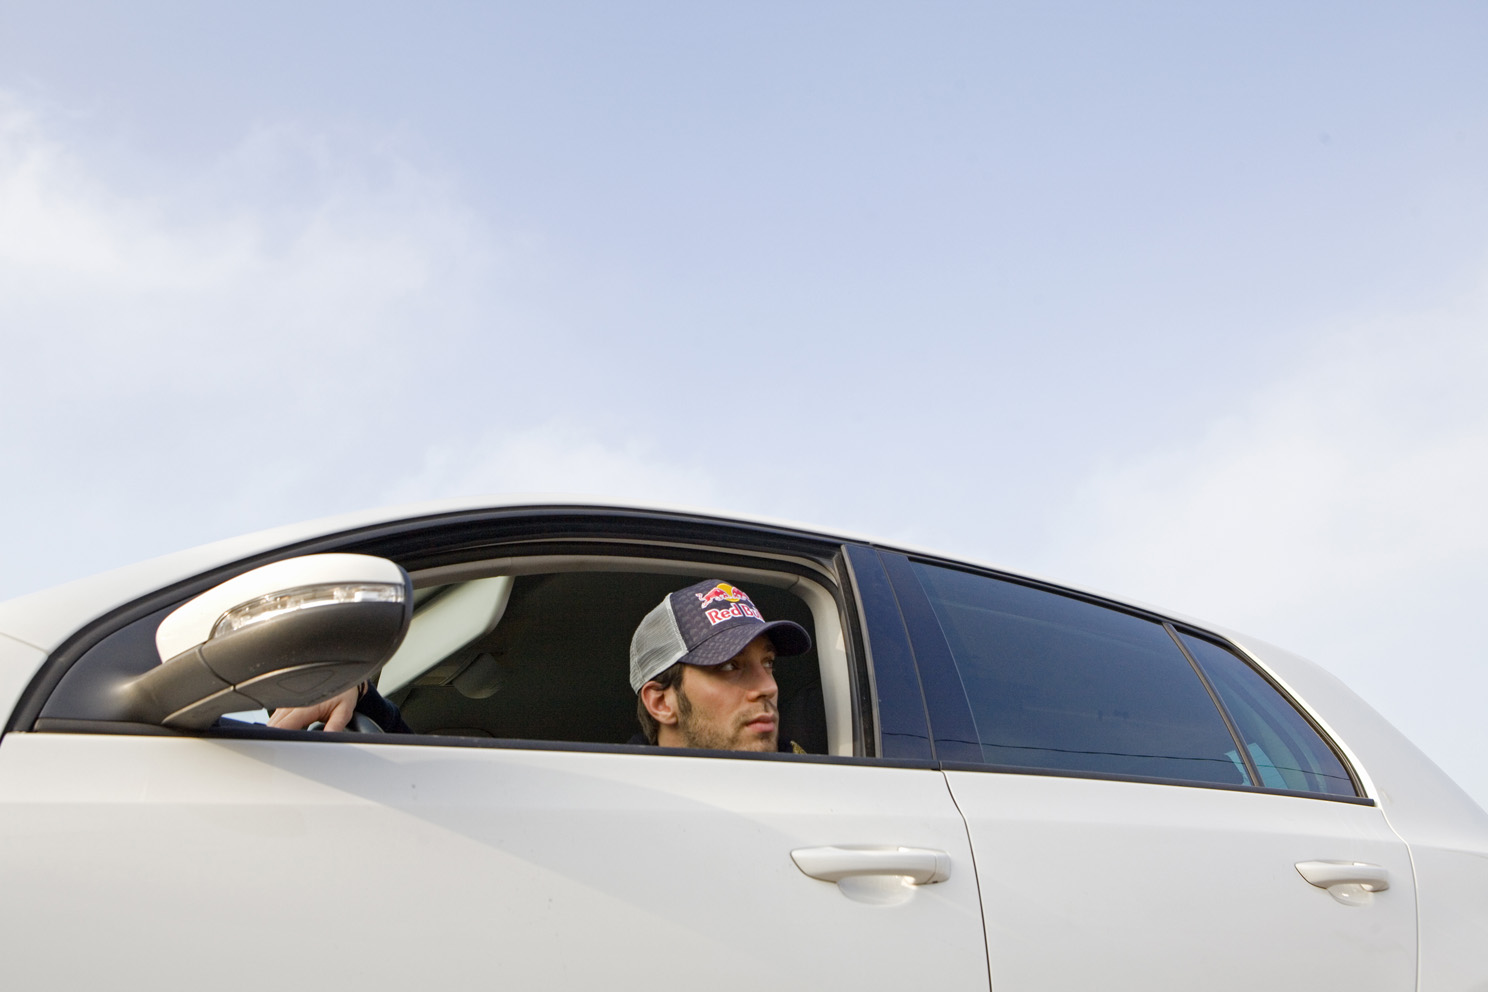 Jean-Eric Vergne driving through the outskirts of Faenza, Italy.